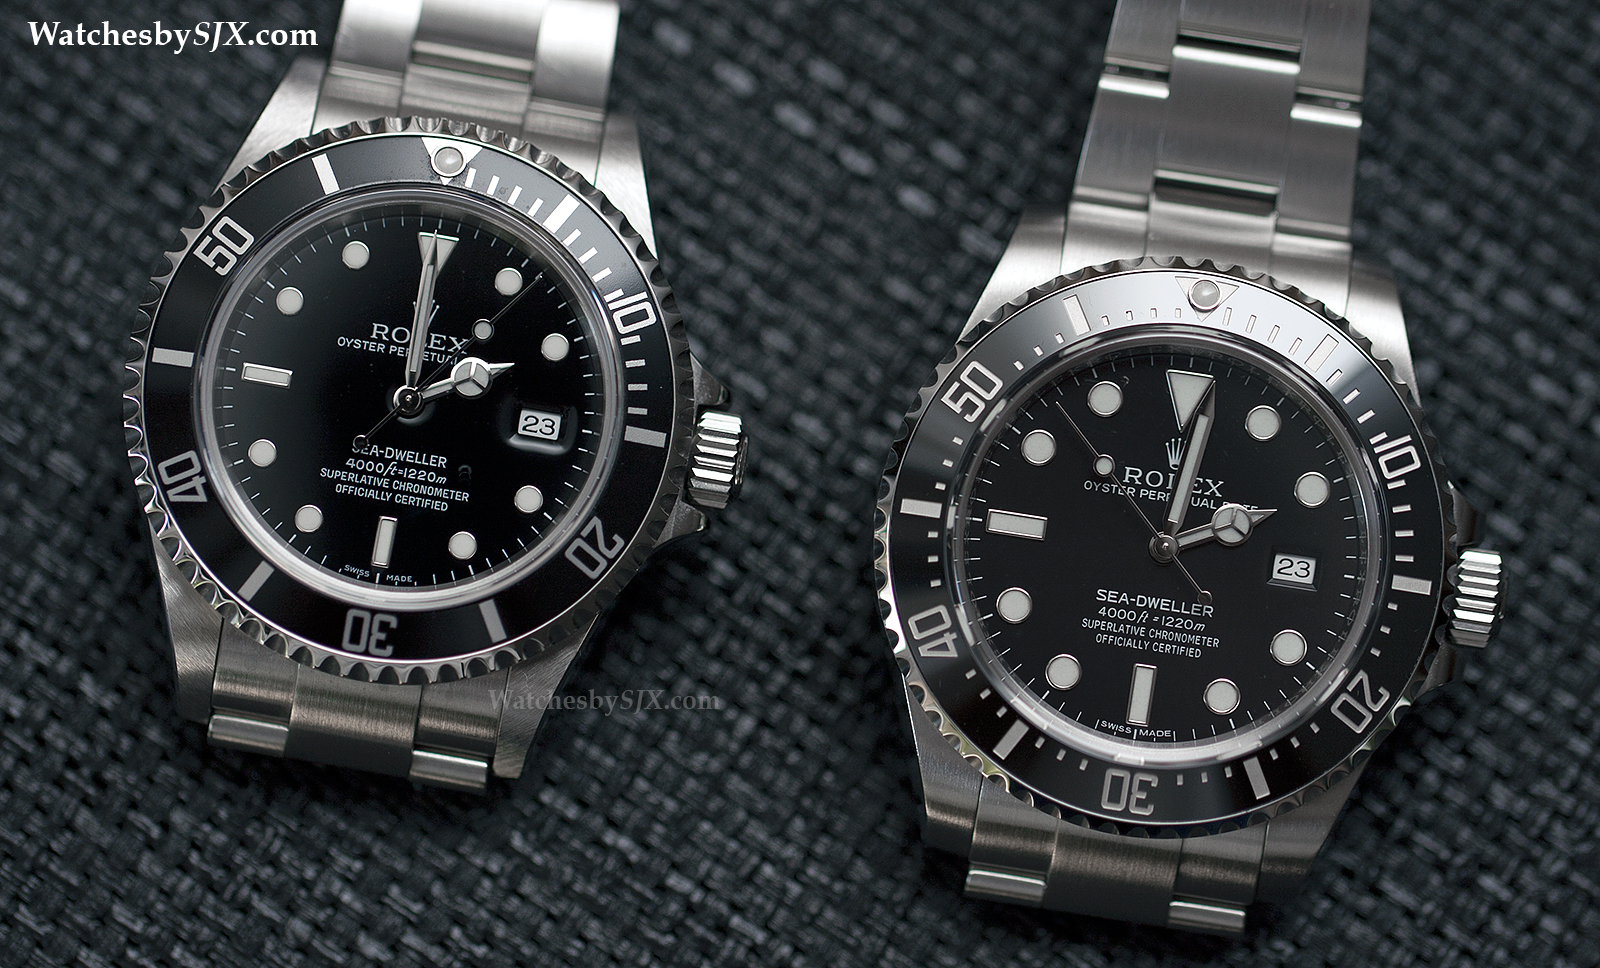 comparison rolex sea dweller 4000 refs 16600 vs 116600 with live photos sjx watches